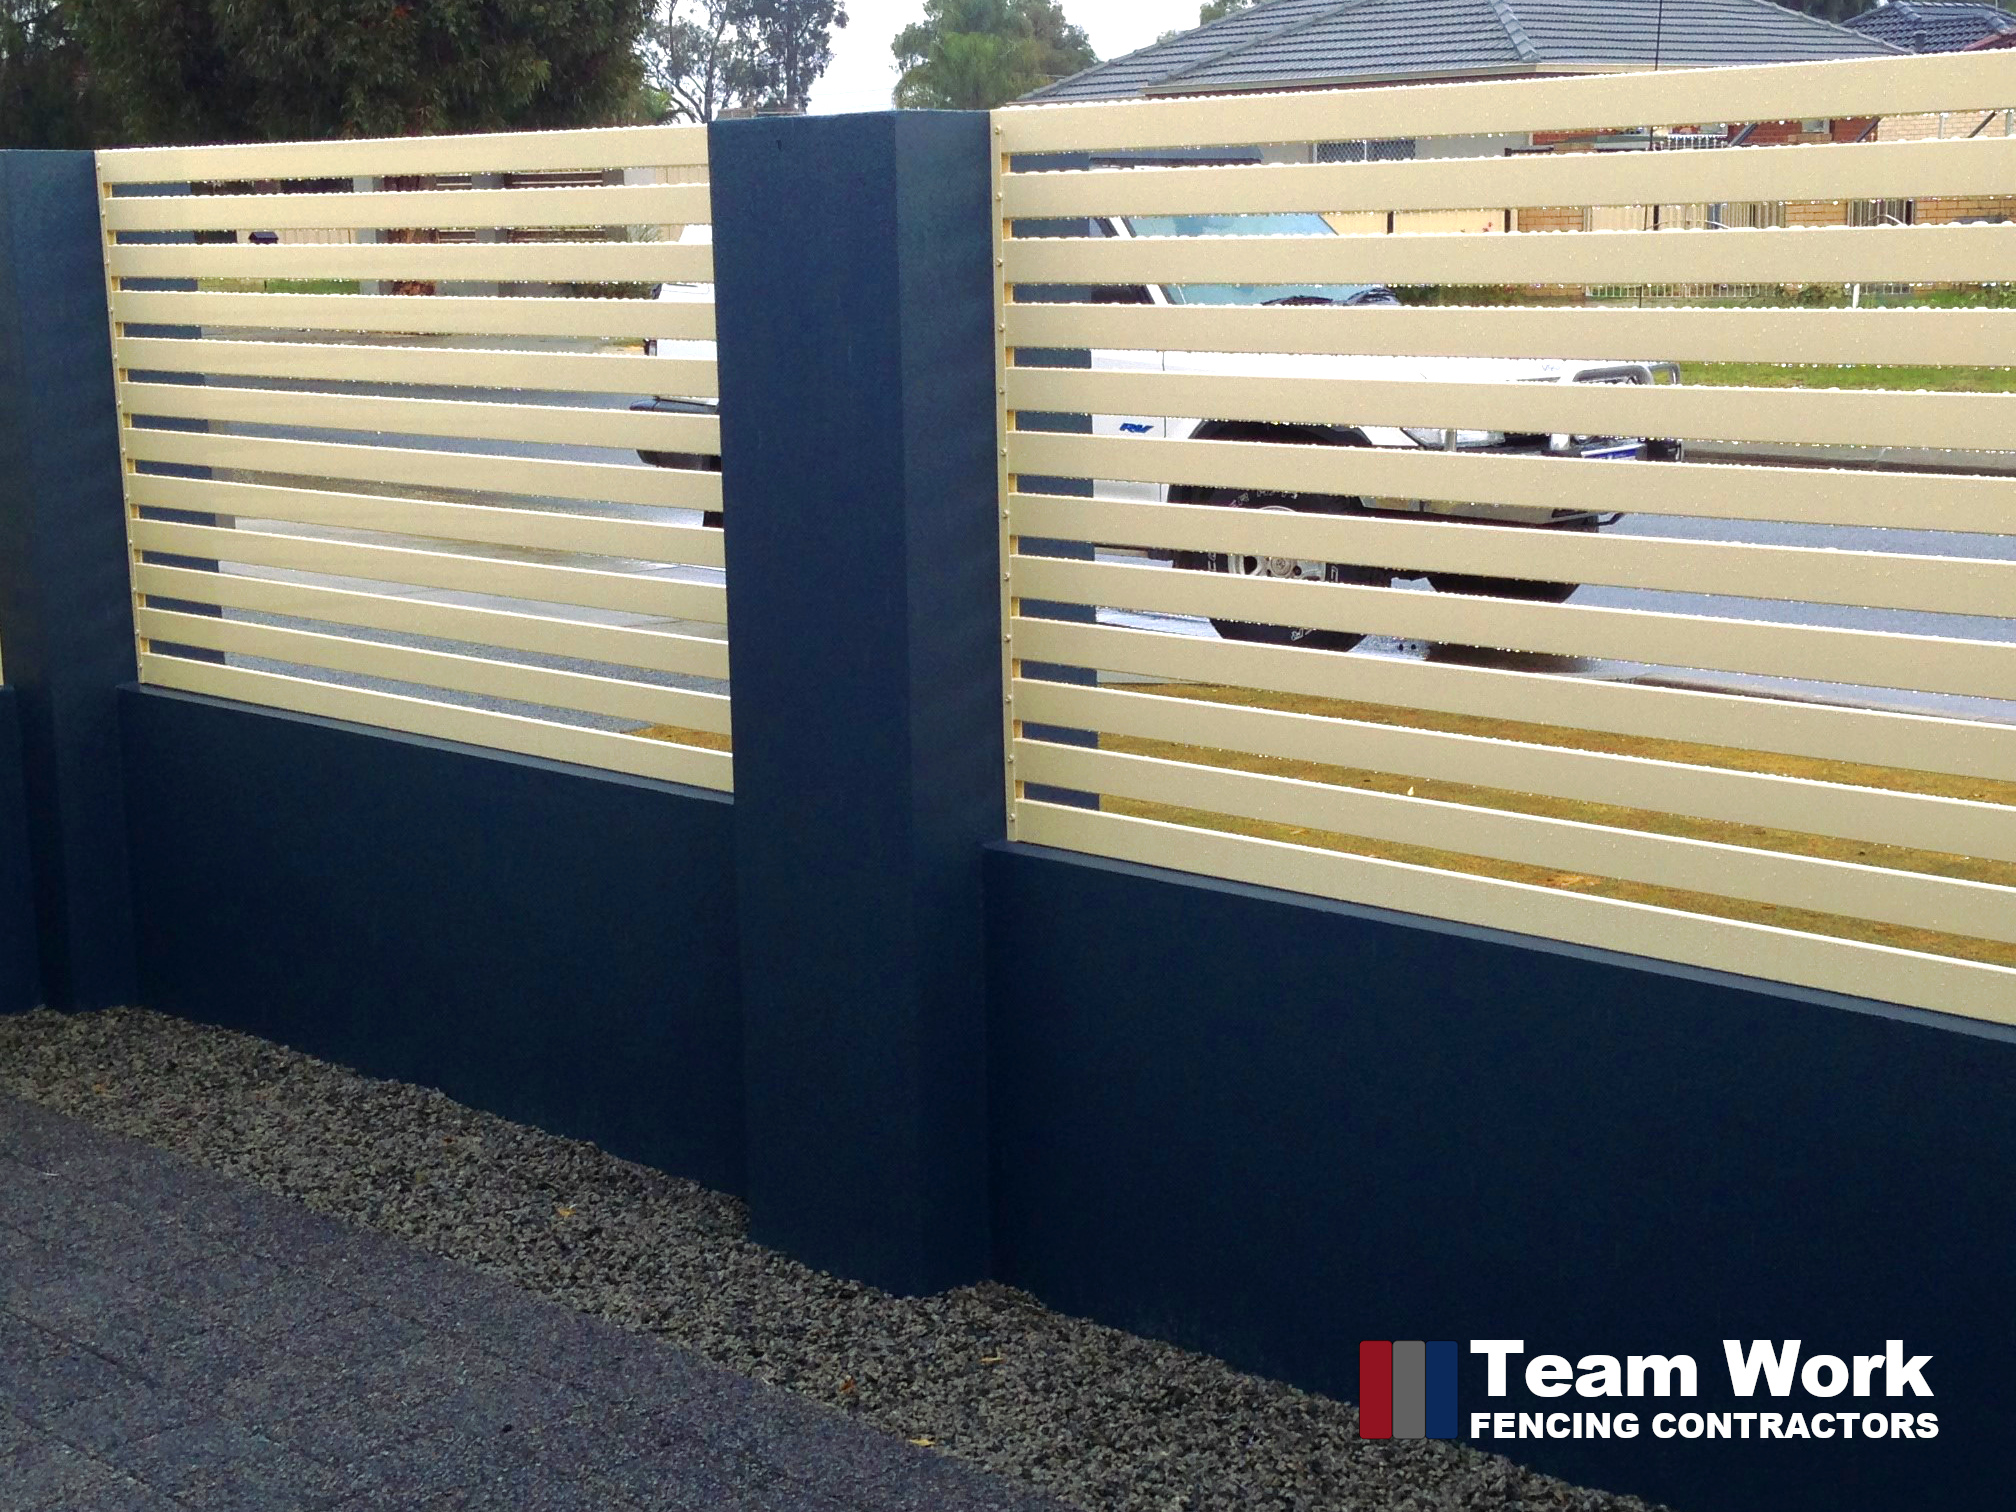 Cream Off-White Colour EZI Slat Fence in Blue concrete fence panel contrast installed in Perth